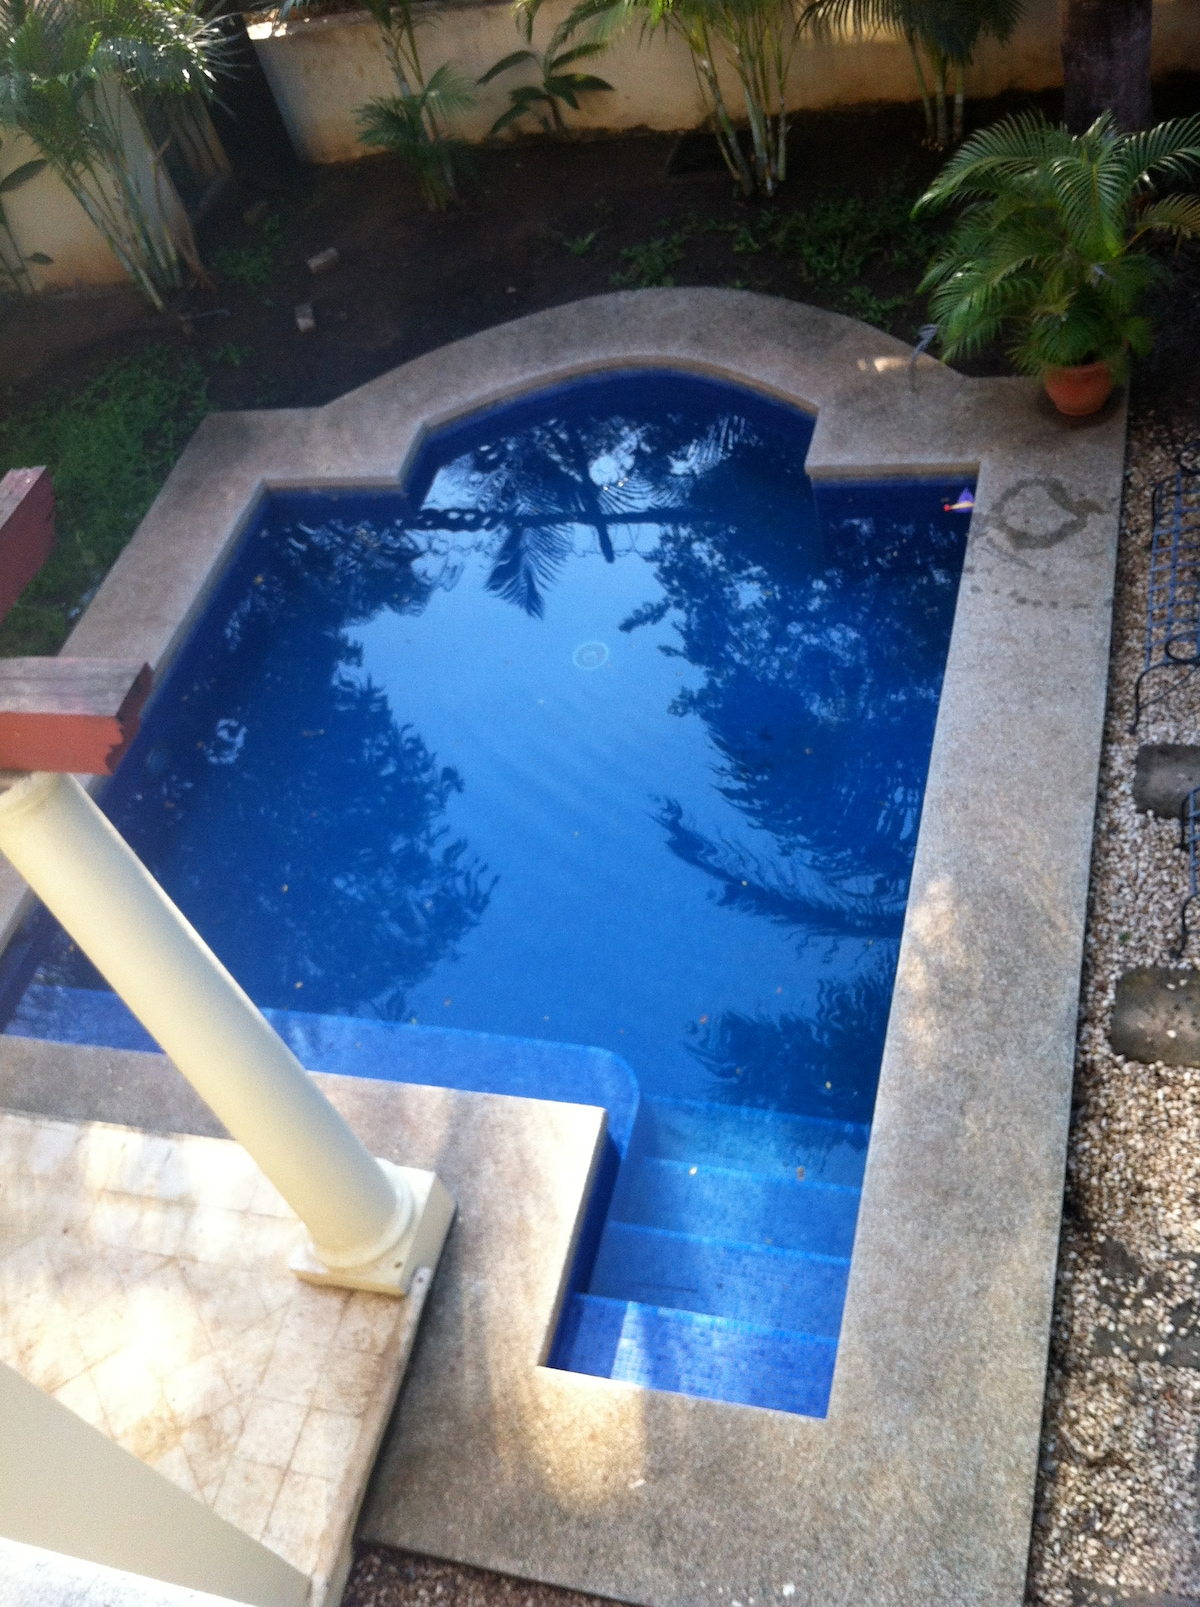 The plunge pool - so refreshing after a day at the beach.